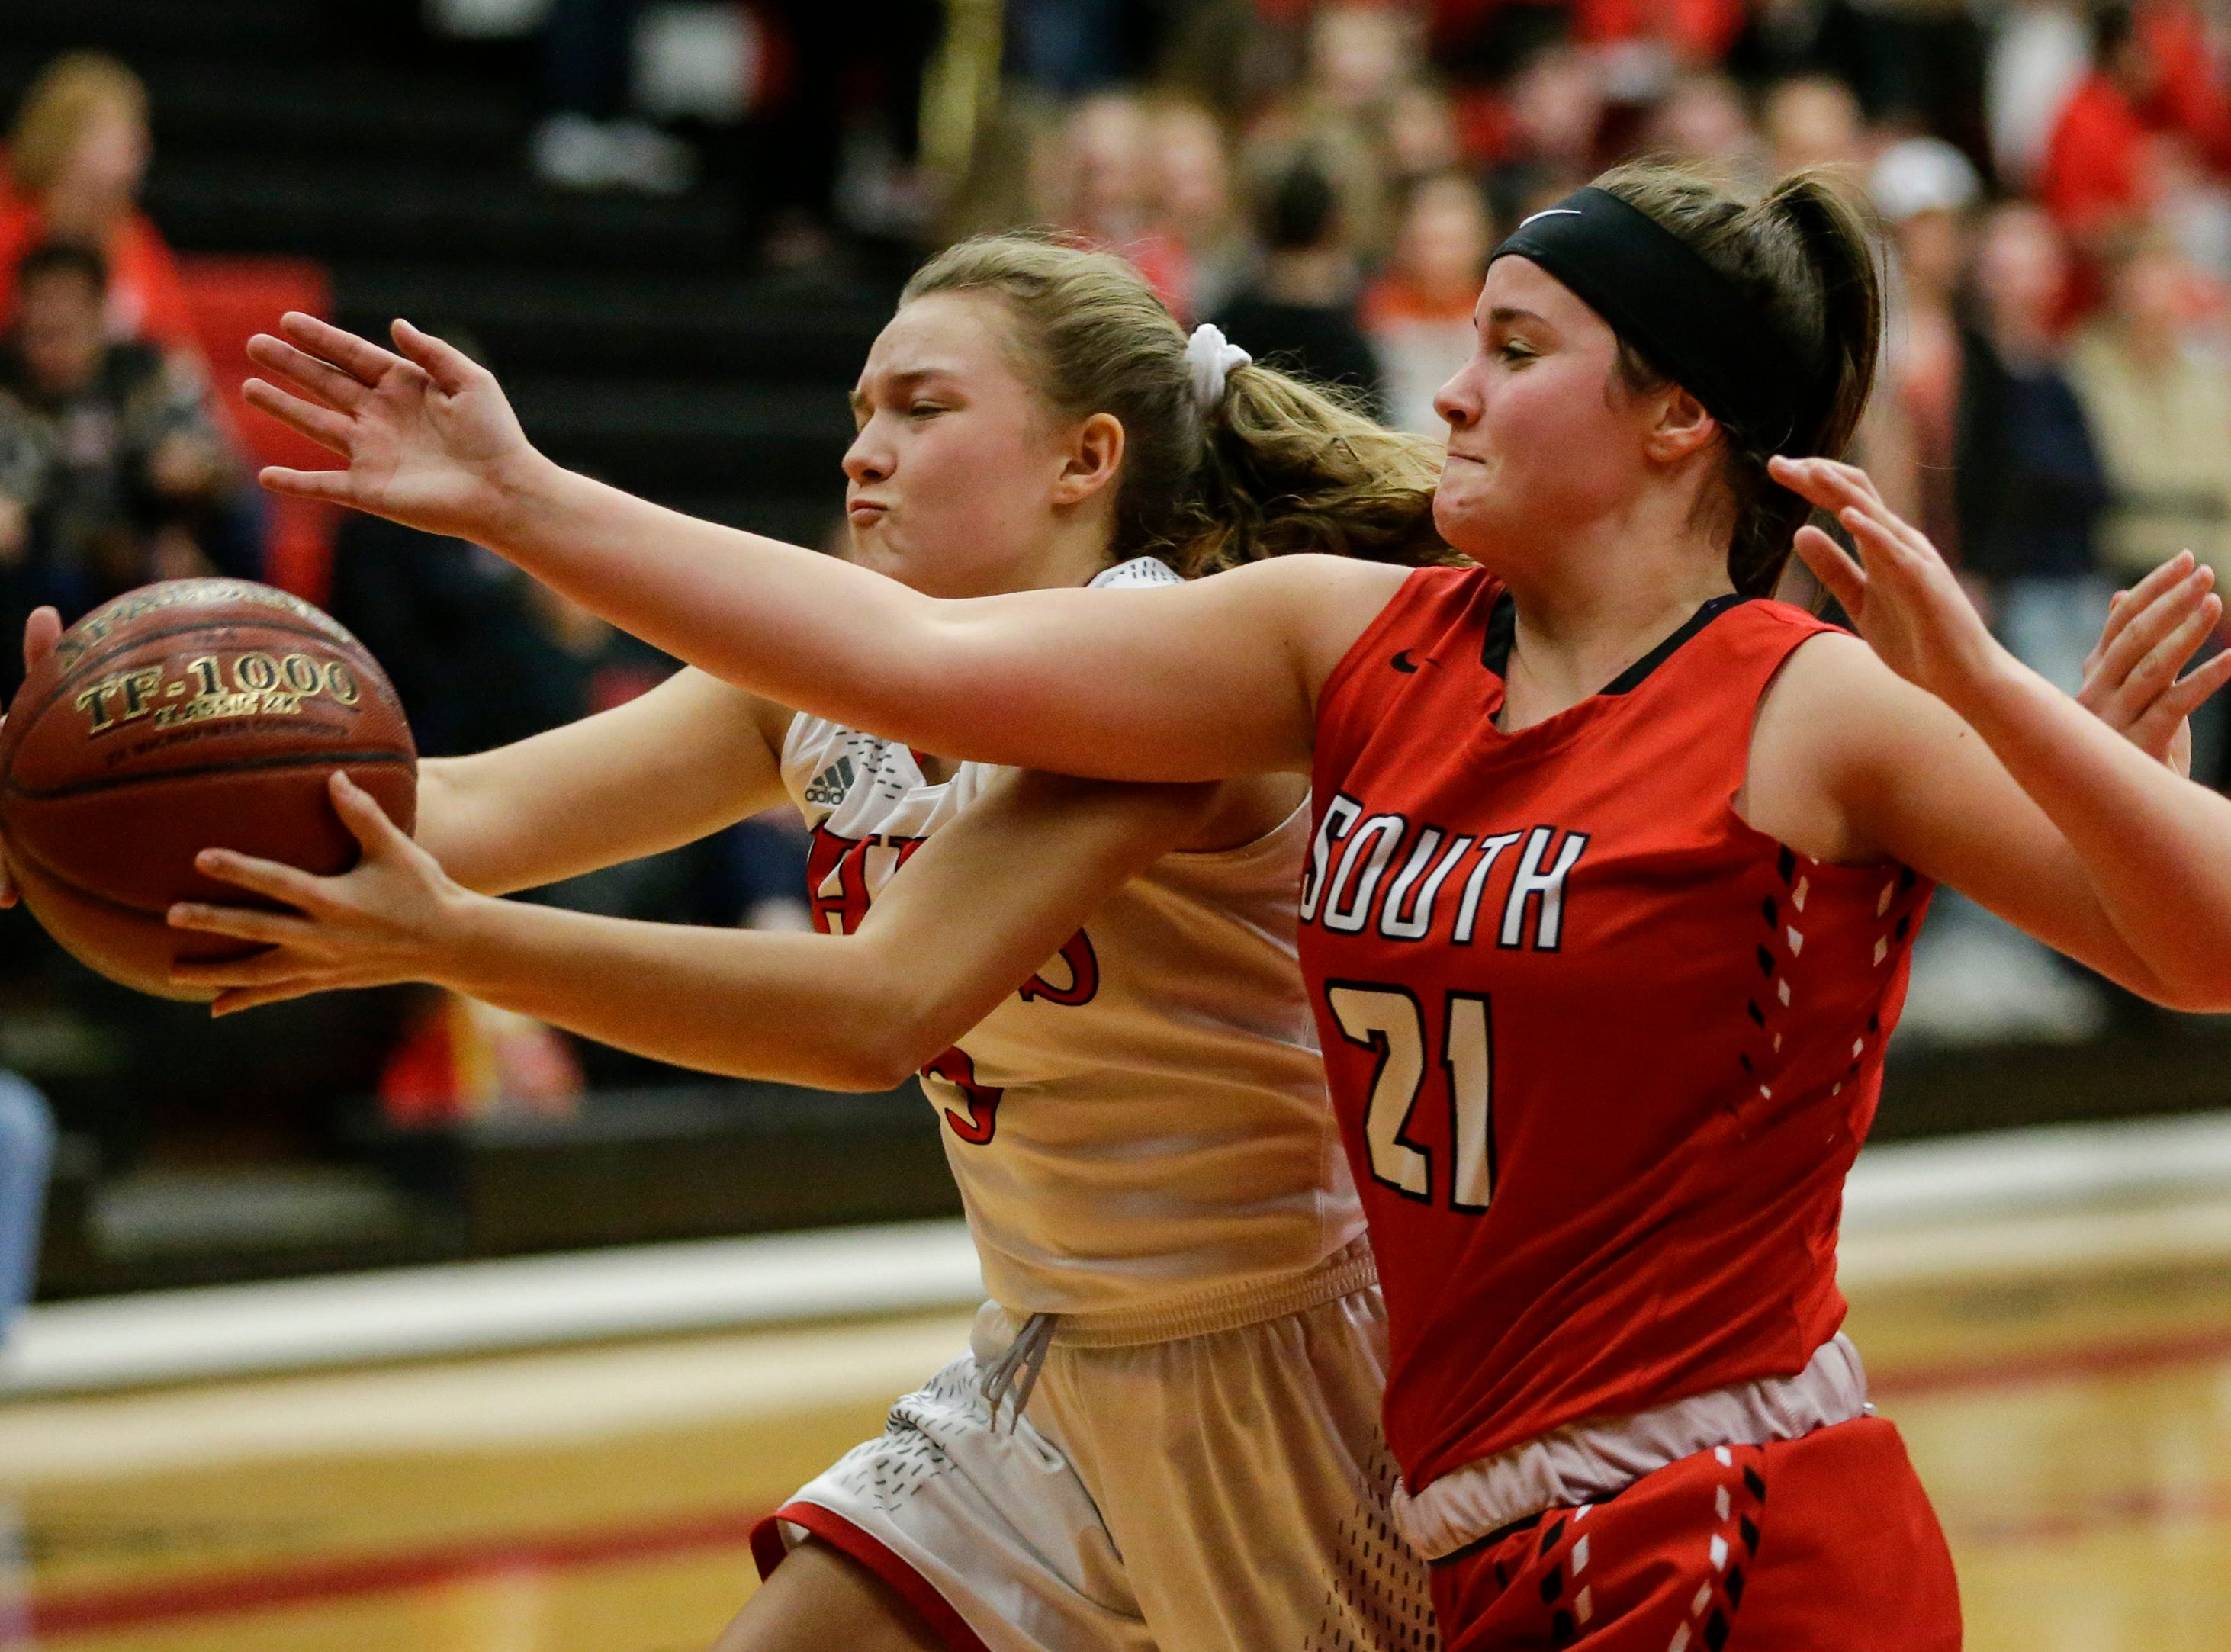 Manitowoc Lincoln's Lauren Delmore (3) battles Sheboygan South's Dina Bushi for a loose ball during an FRCC matchup at Manitowoc Lincoln High School Friday, January 4, 2019, in Manitowoc, Wis. Joshua Clark/USA TODAY NETWORK-Wisconsin